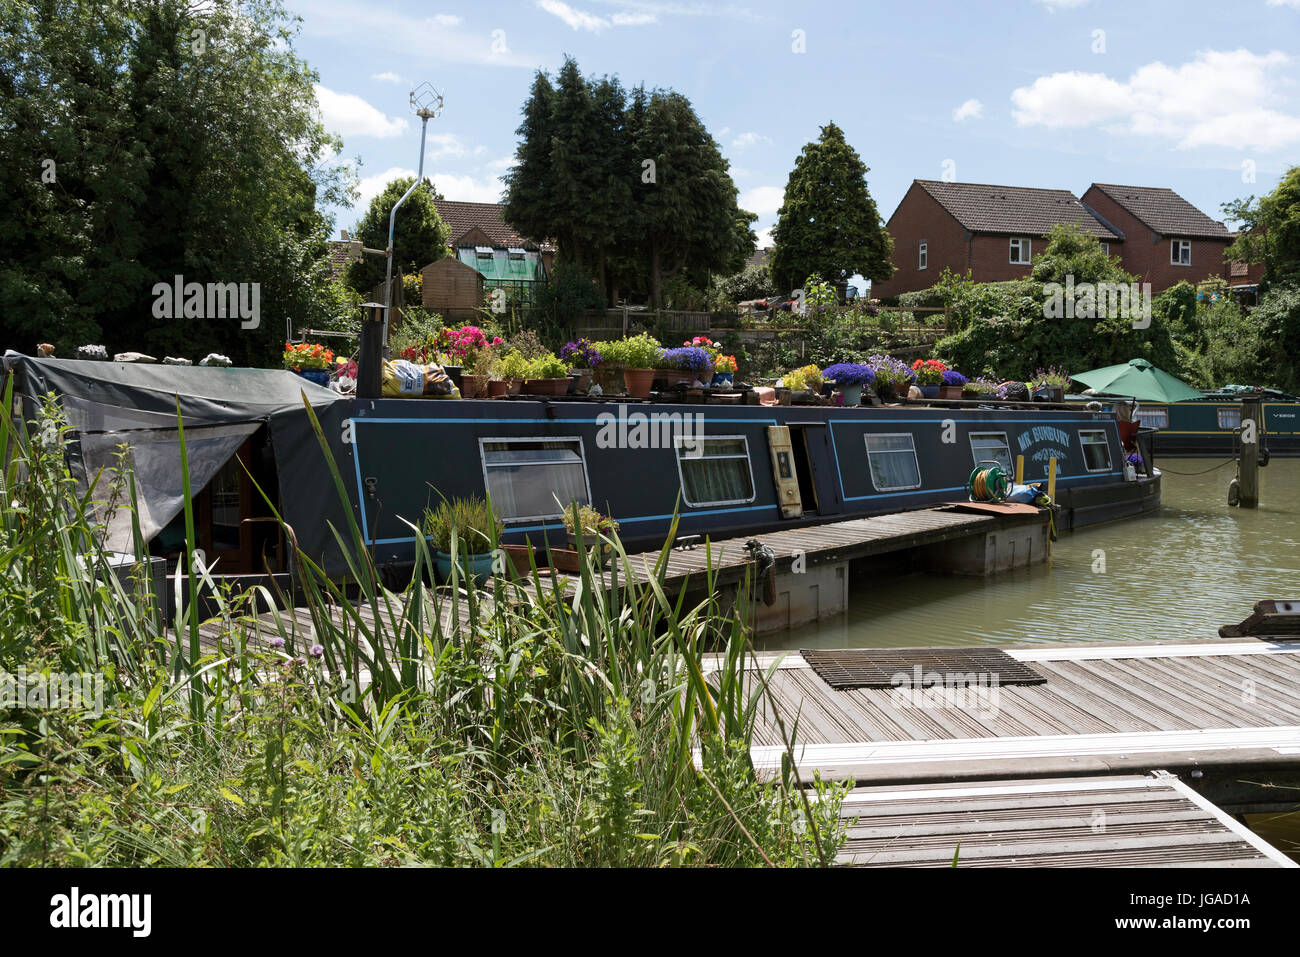 Caen Hill moorings on the Kennet & Avon Canal at Devizes Wiltshire England UK - Stock Image